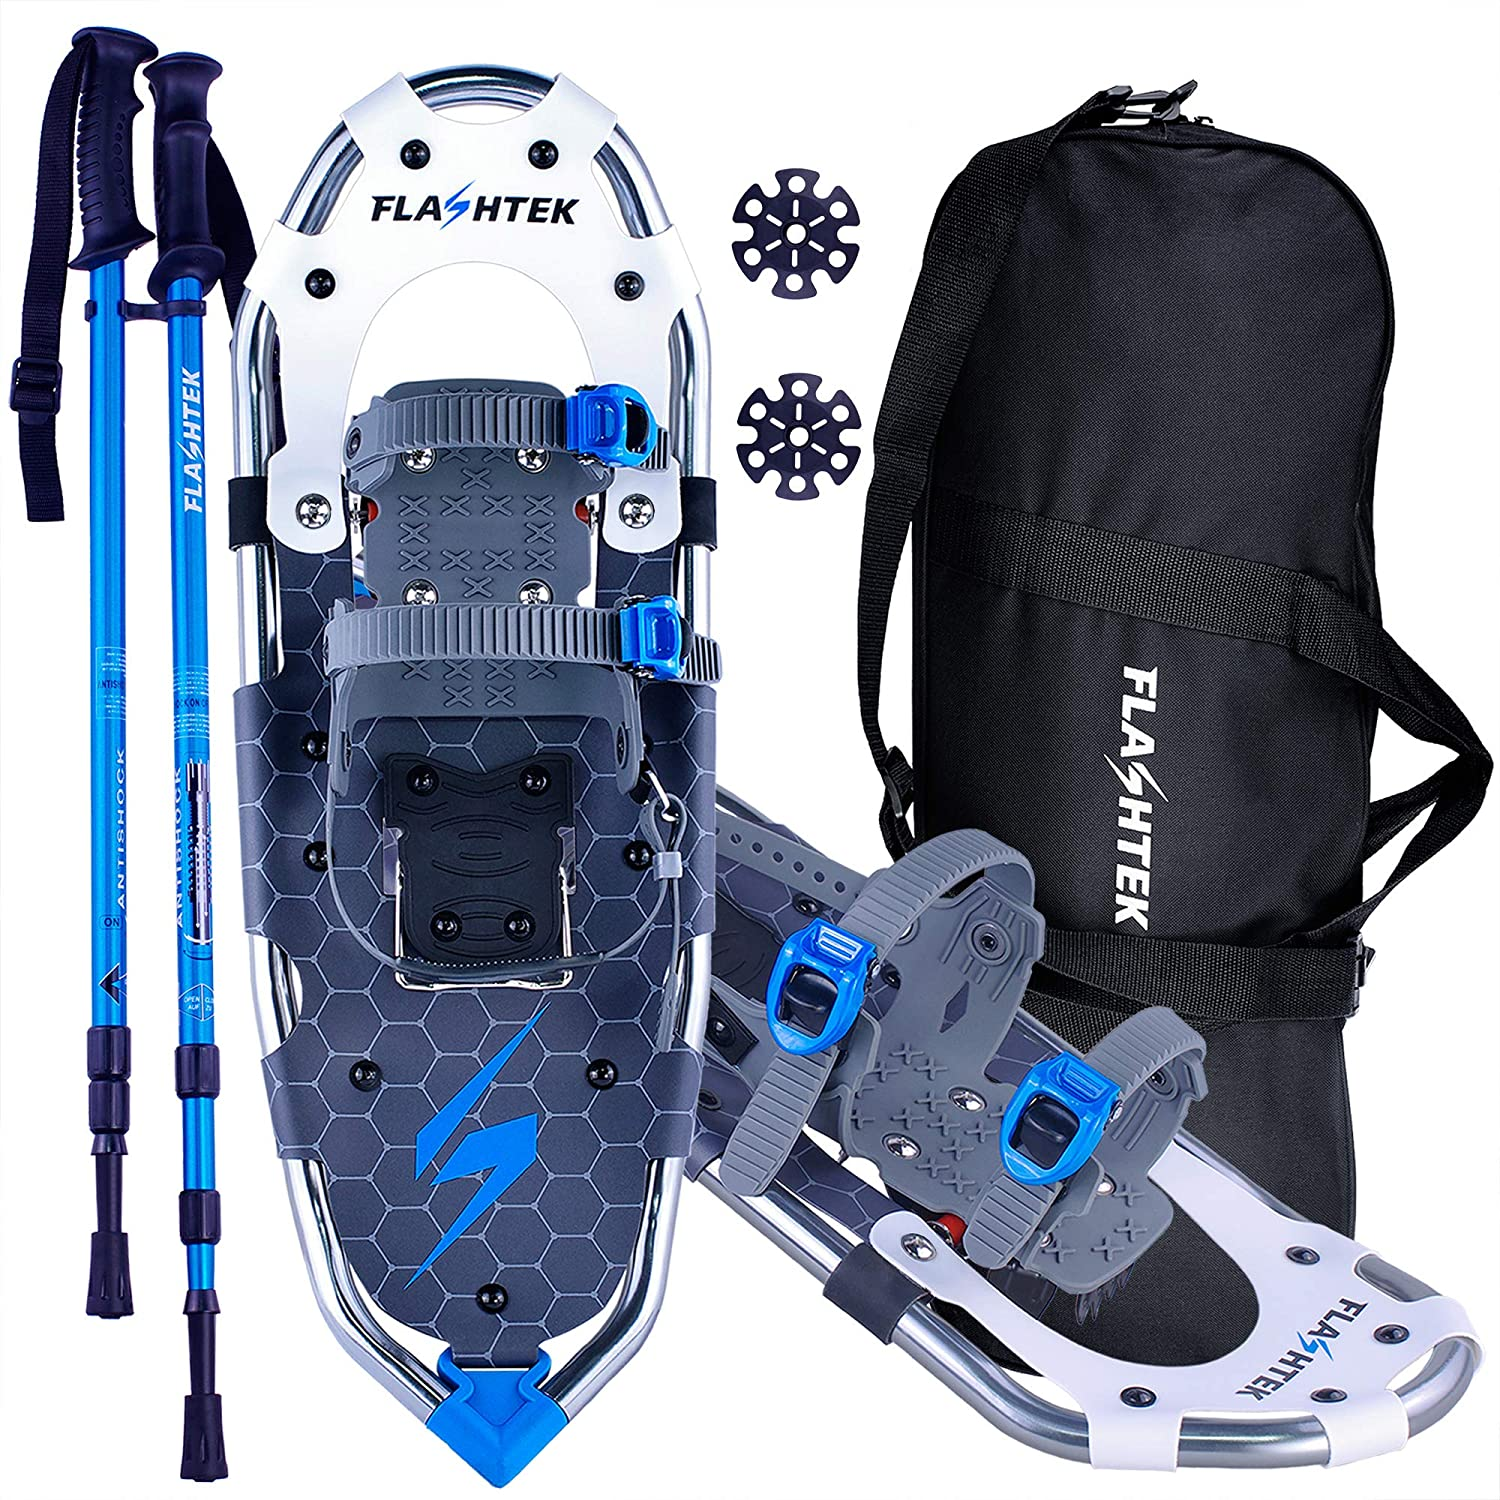 FLASHTEK Lightweight Snowshoes for Men Women Youth, Aluminum Terrain Snow Shoes for Hiking and Heel Lift Riser for Mountaineering with Trekking Poles and Carrying Tote Bag